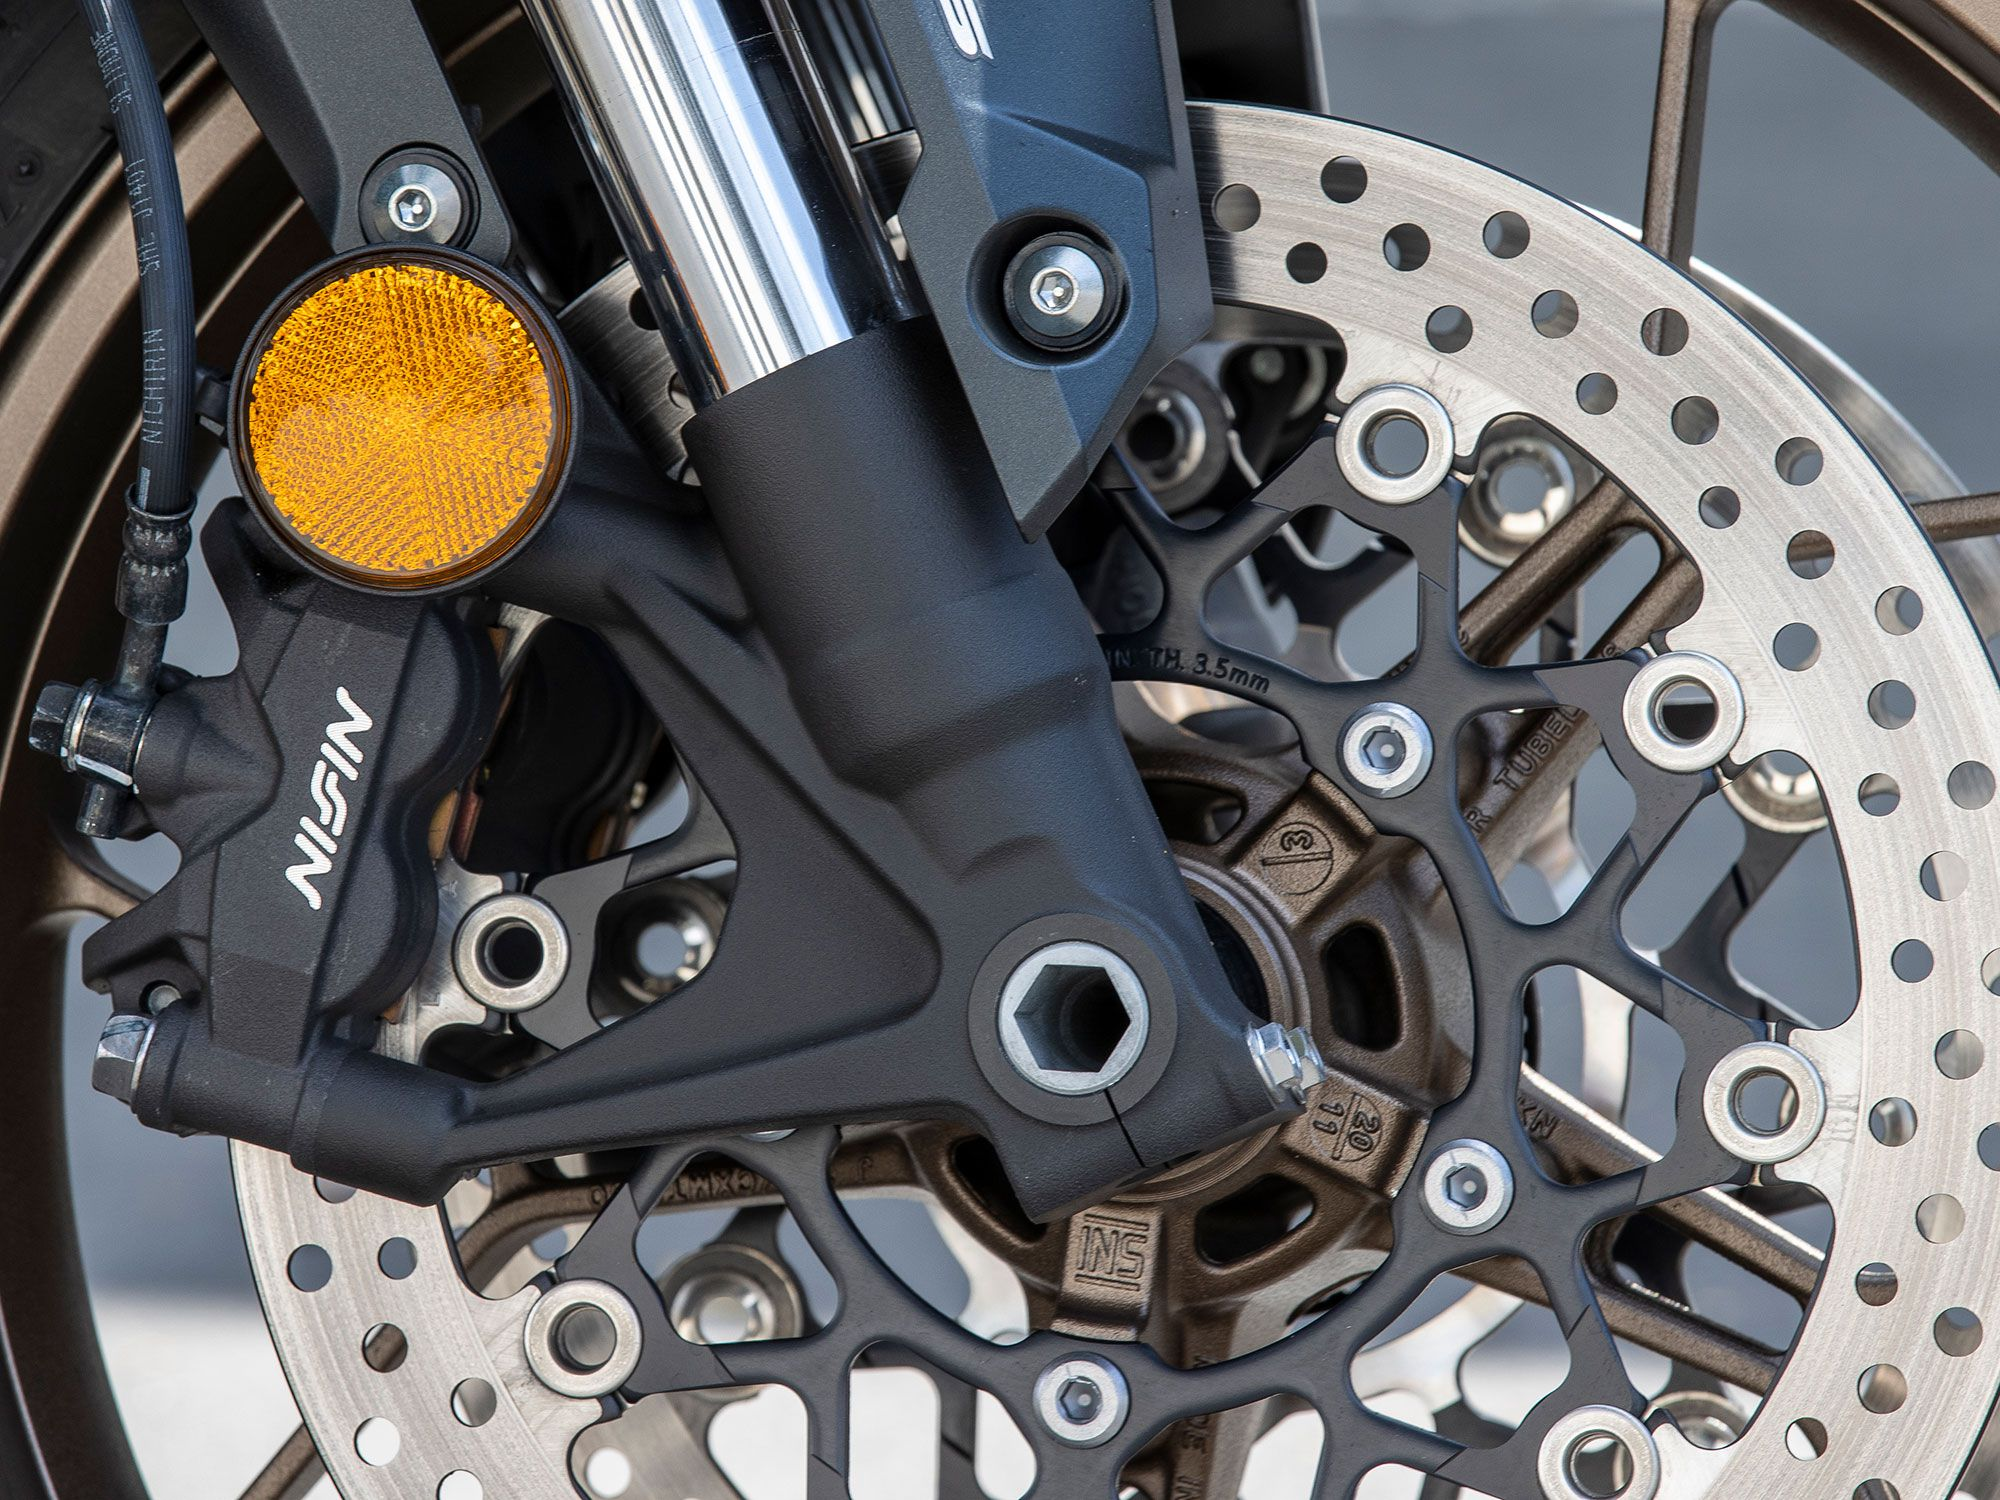 A pair of four-piston Nissin calipers clamping to 310mm discs bring the CB650R to a halt, even if lack of feel at the kever hinders their true stopping potential.